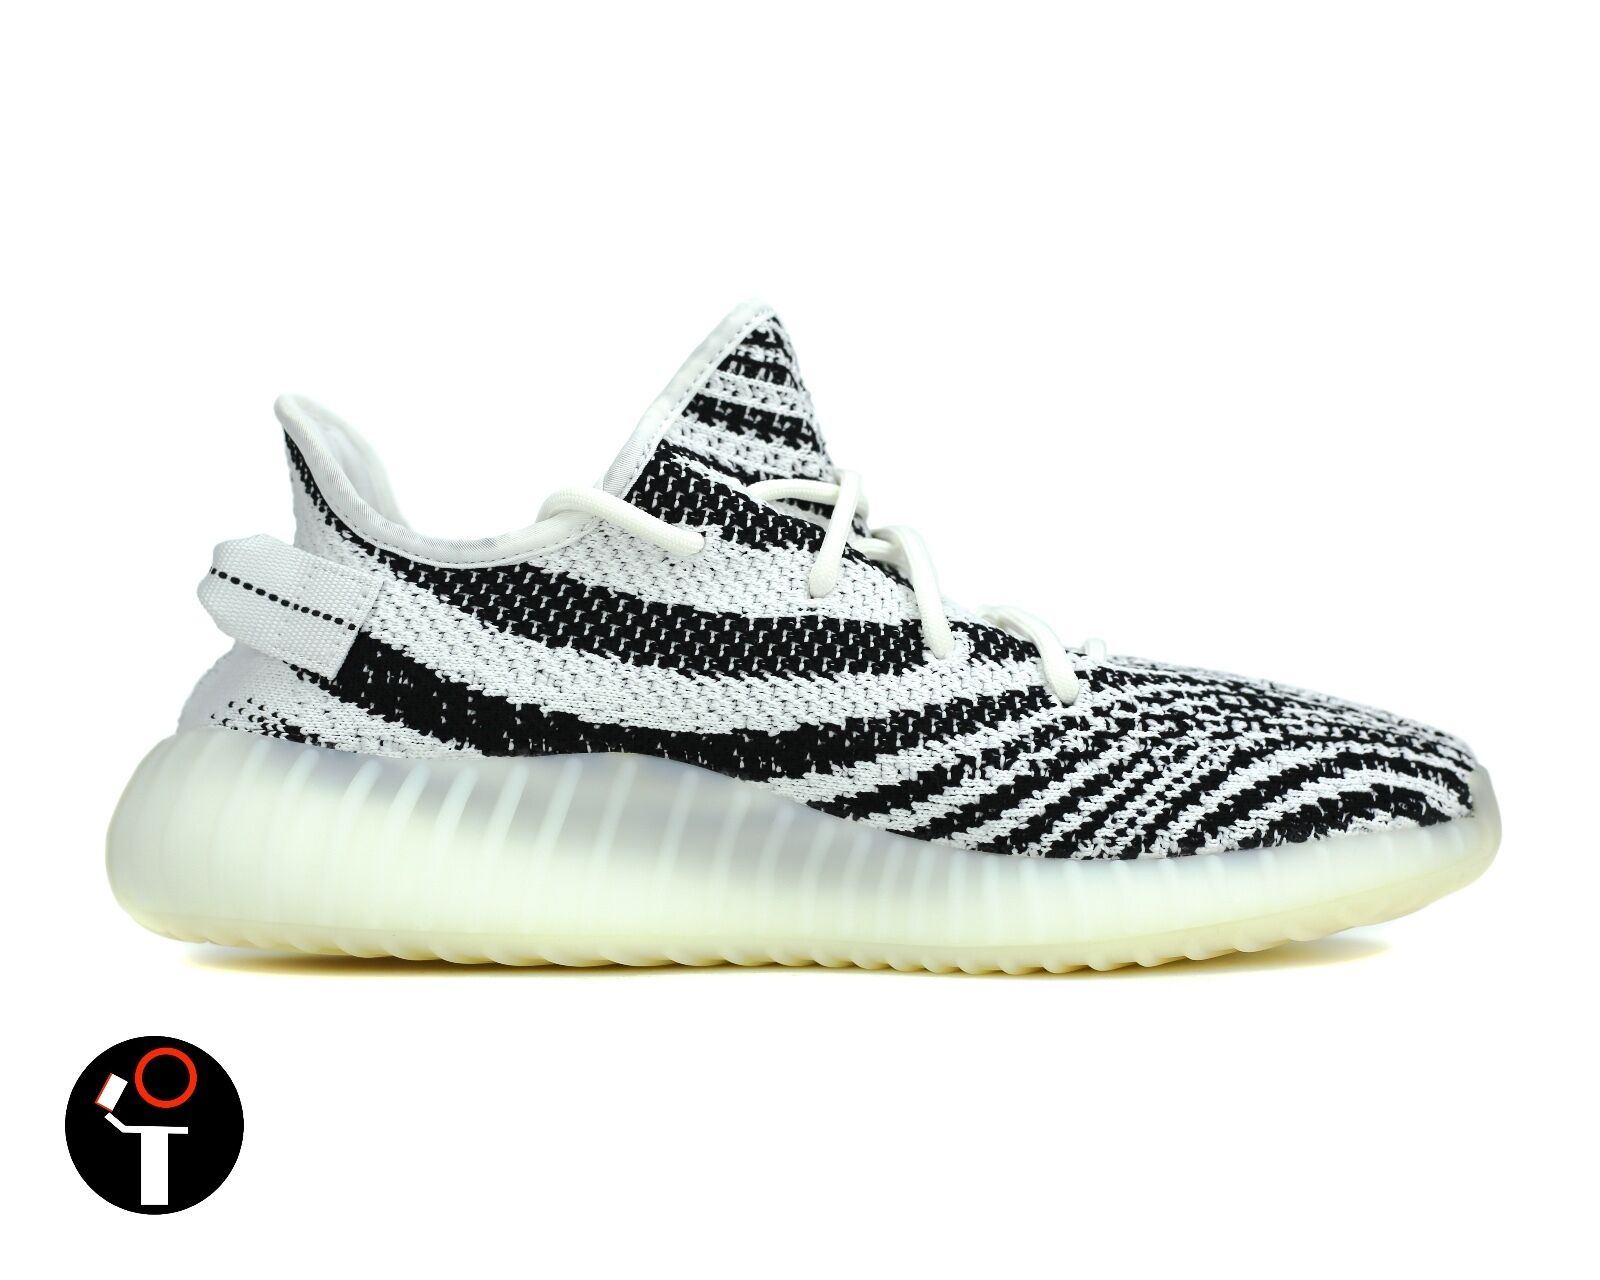 4b43d7273 adidas shoes women black and white adidas yeezy 350 boost zebra box ...